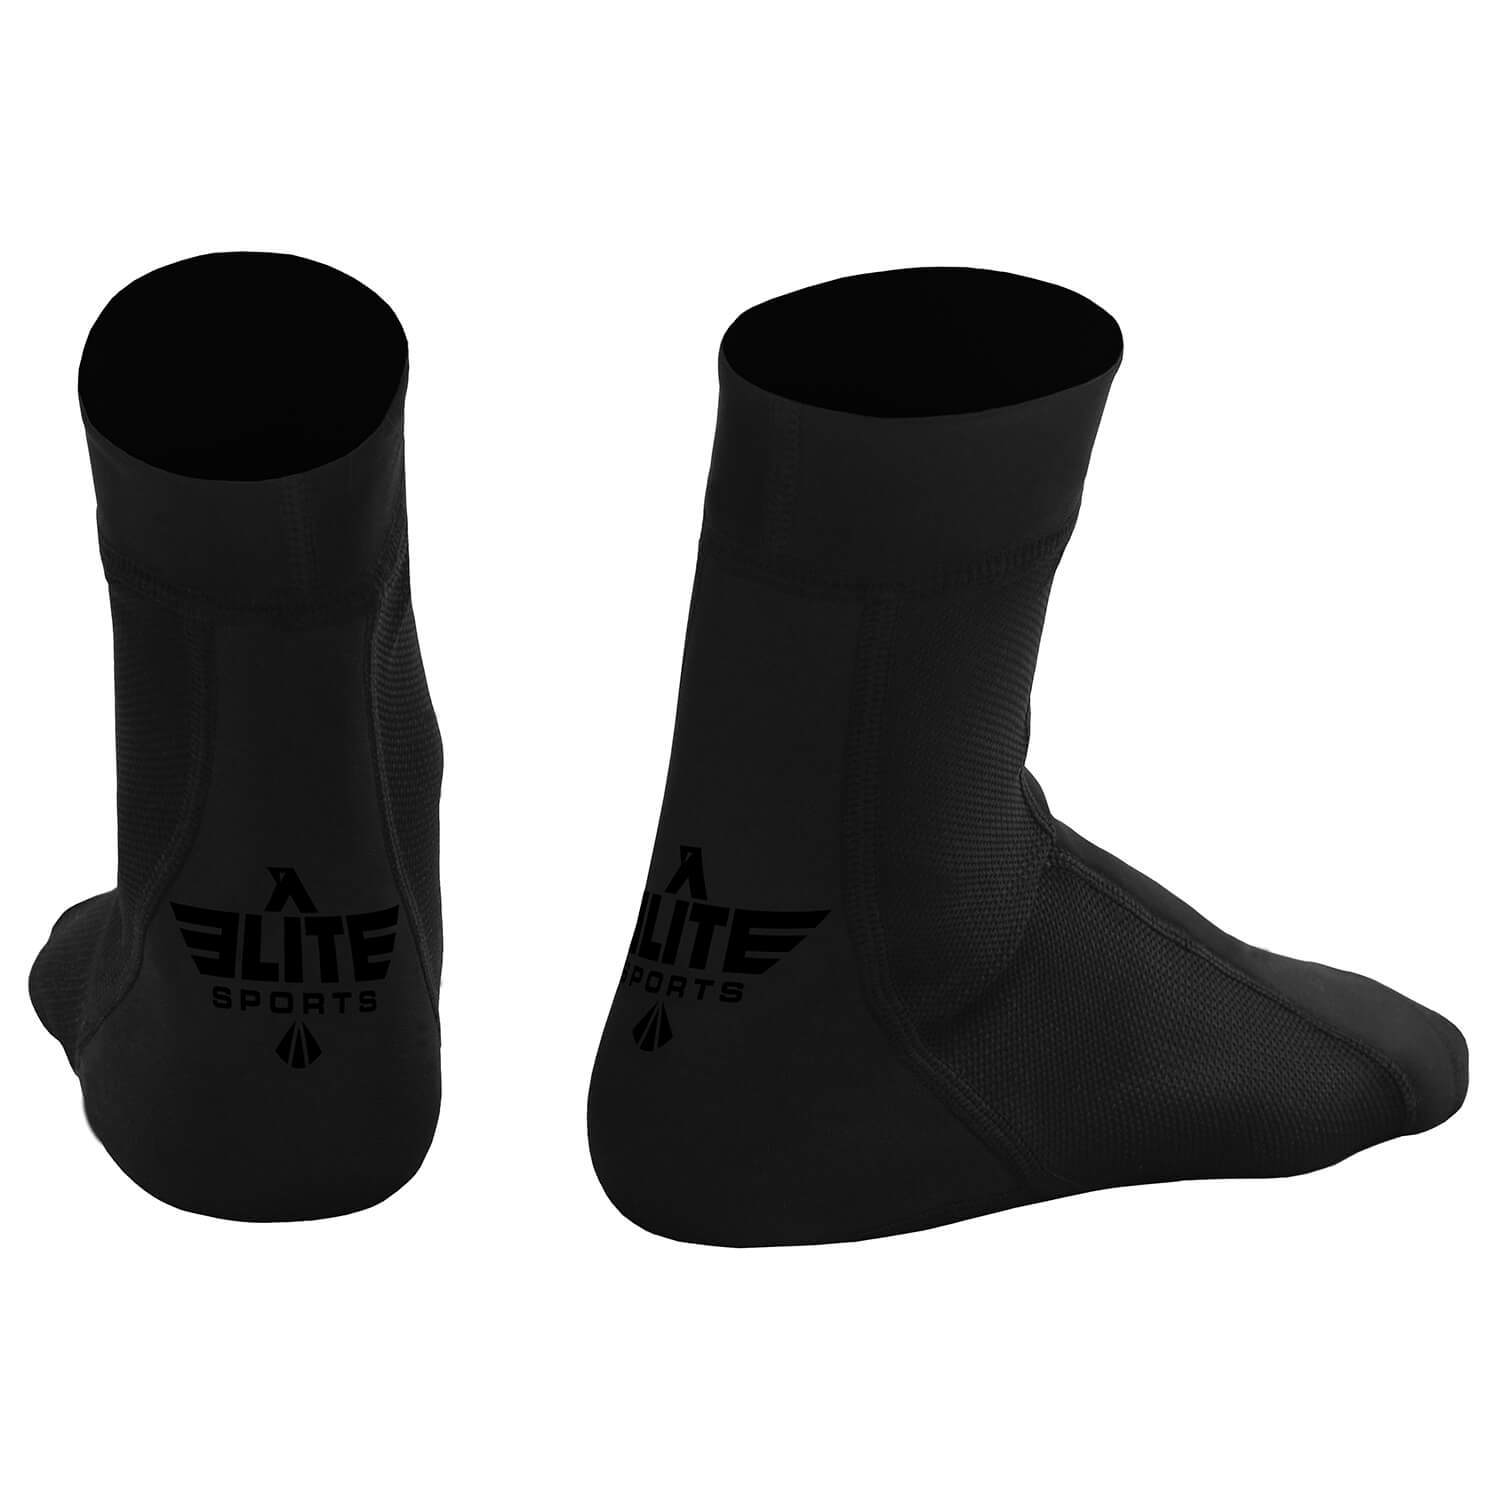 Load image into Gallery viewer, Elite Sports Black MMA Foot Grips